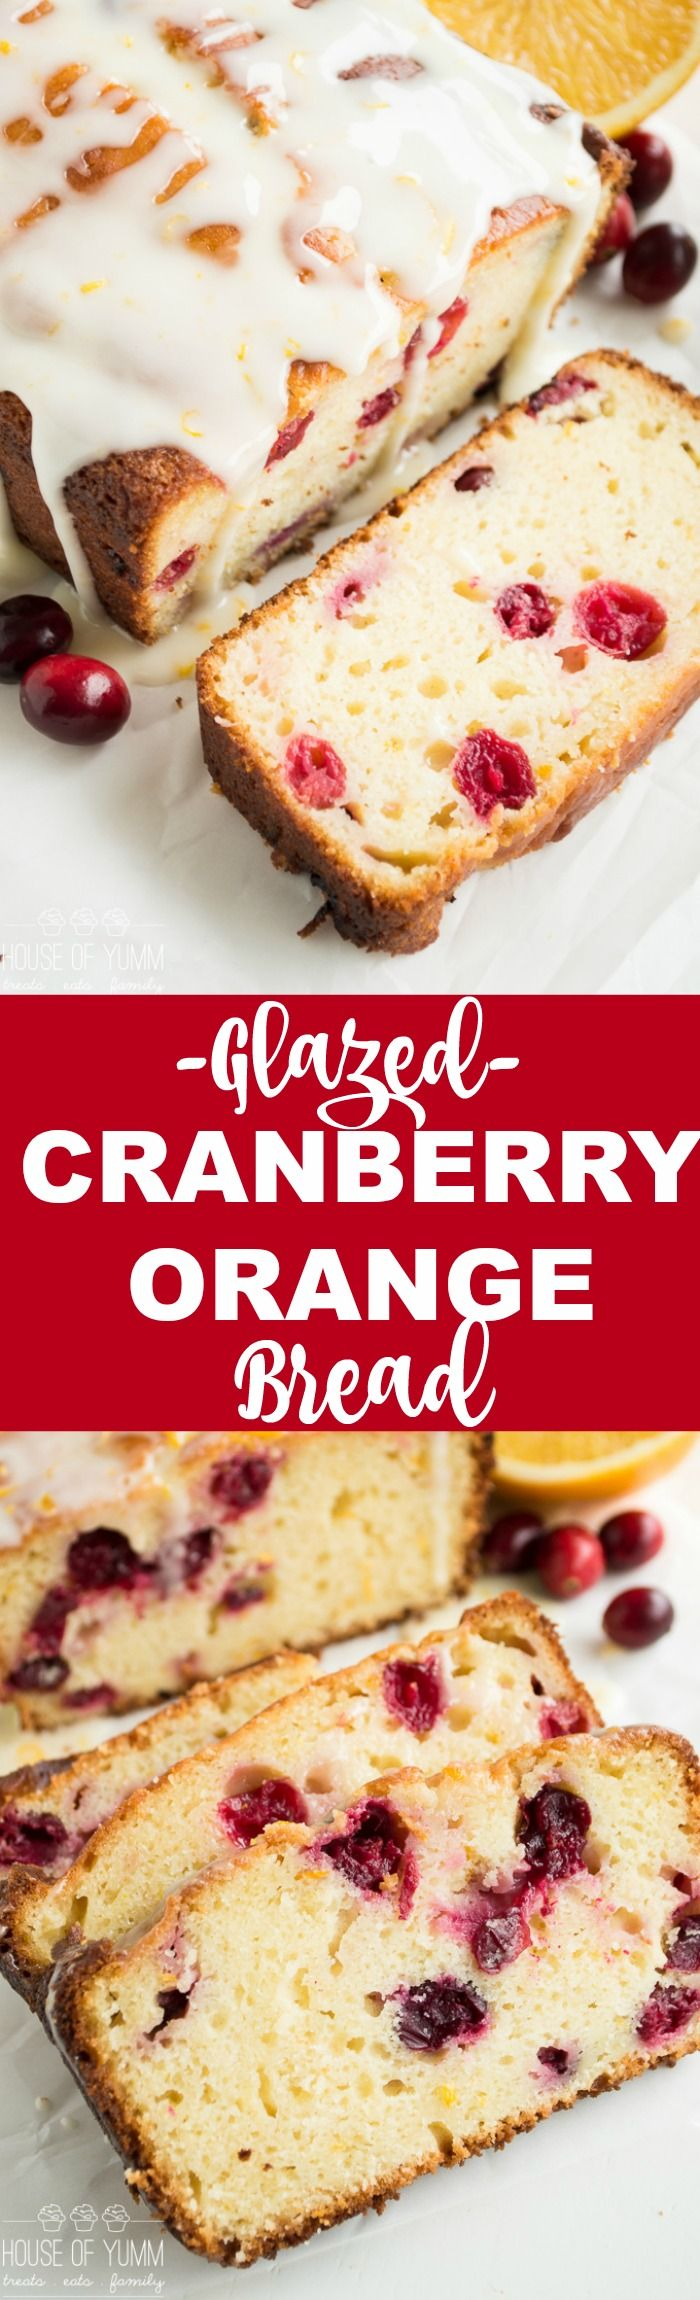 Super moist Cranberry Orange Bread drizzled with an orange zest glaze, bursting with tart cranberries. Made using fresh orange juice and greek yogurt! This bread is always a hit!! This Glazed Cranberry Orange Bread is almost like a pound cake. It's so tender and moist thanks to the combination of cooking with oil and Greek...Read More »